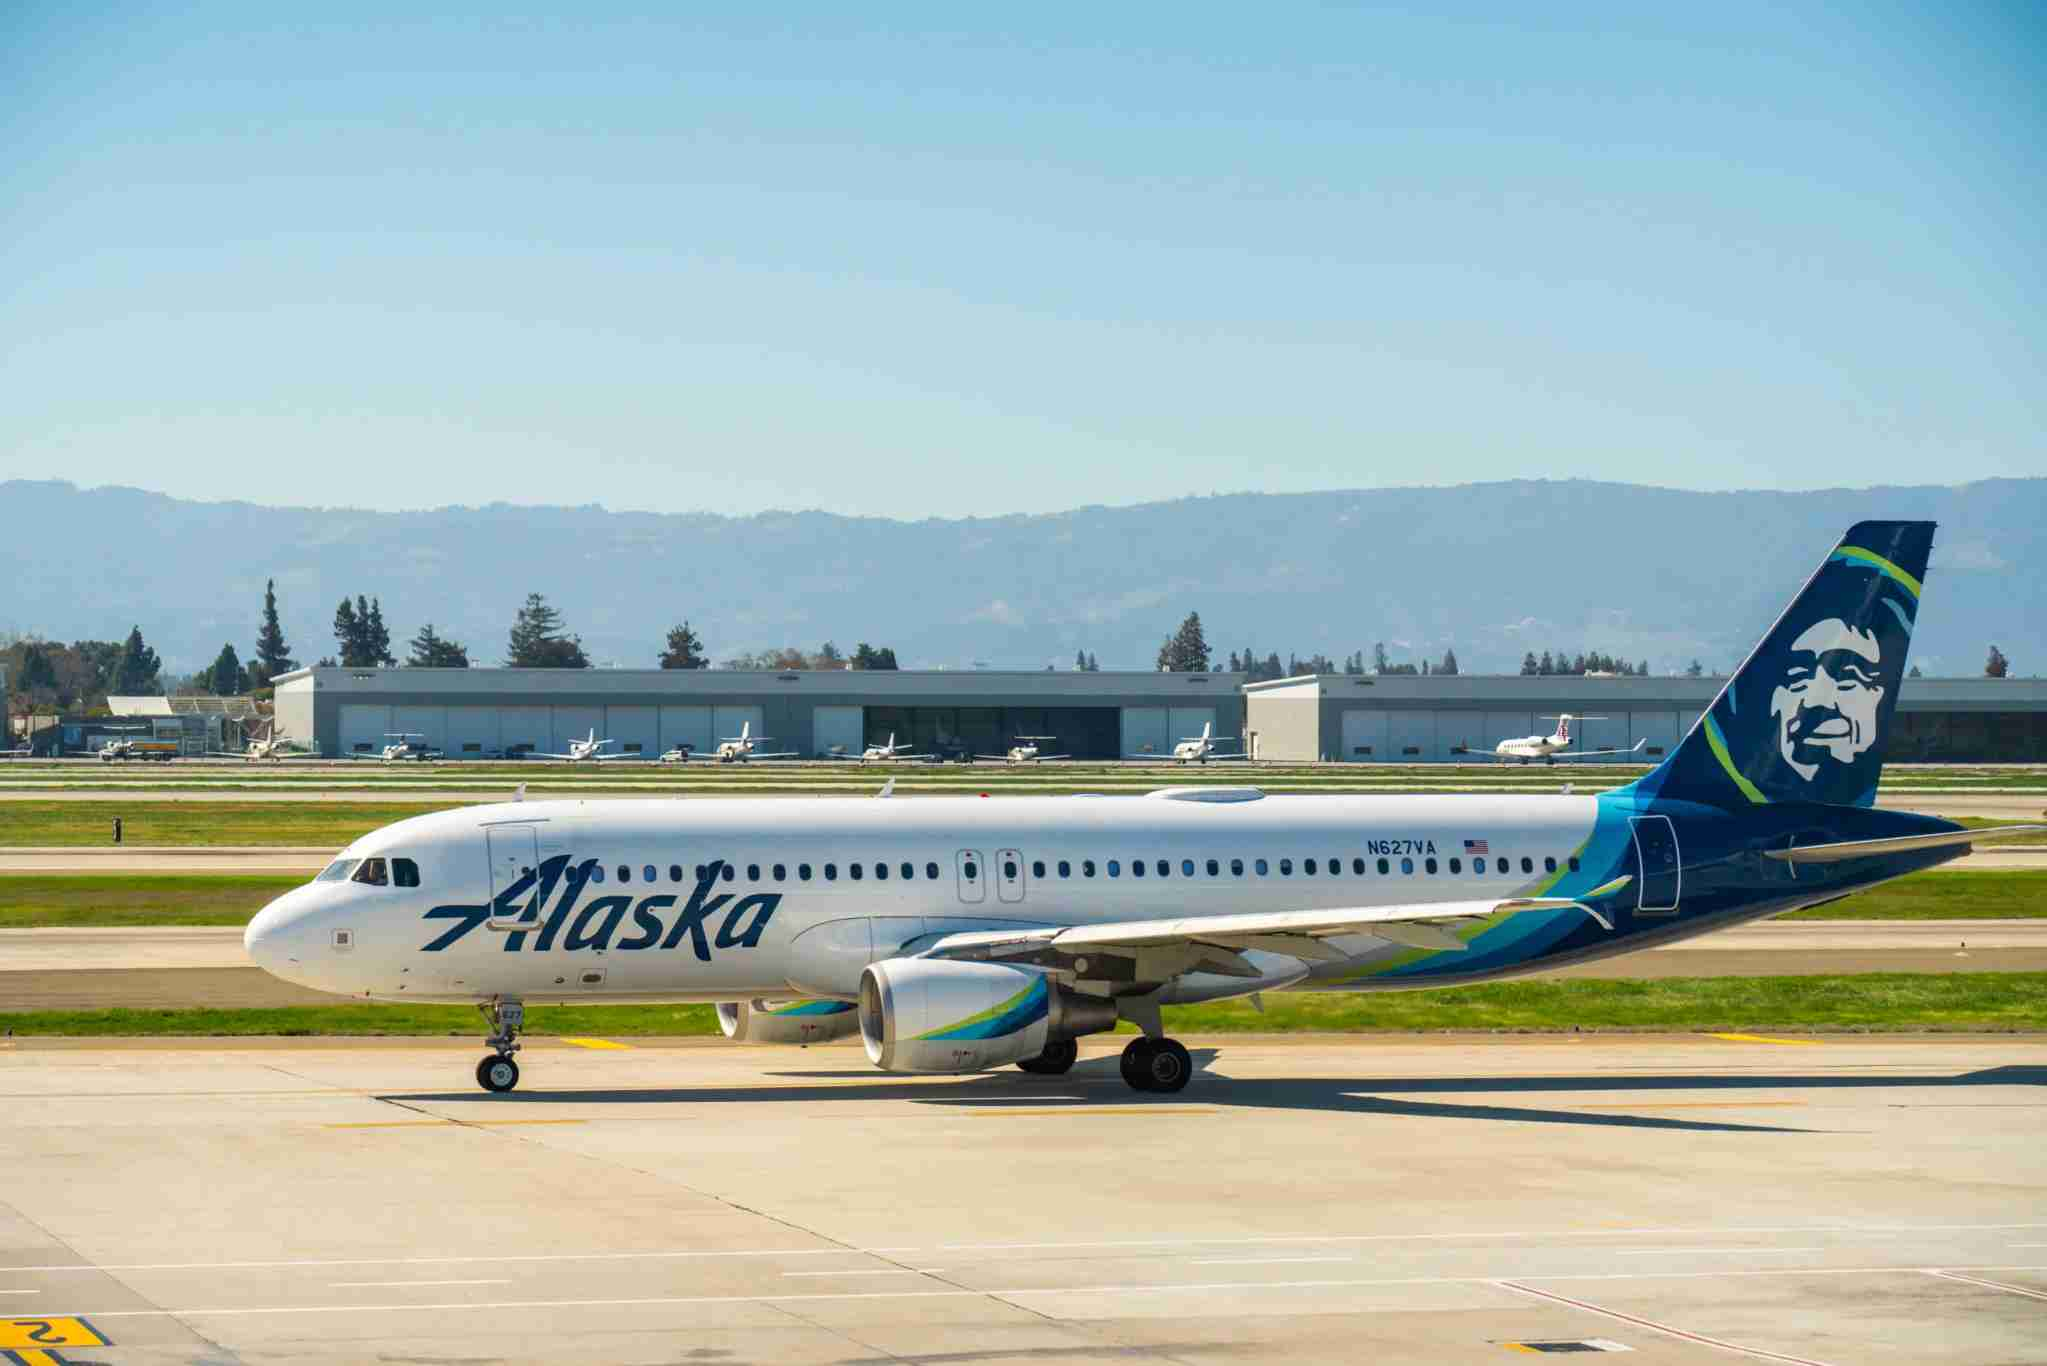 SAN JOSE, UNITED STATES - 2020/02/25: Alaska Airlines Airbus A320-200 aircraft seen at Norman Y. Mineta San Jose International Airport. (Photo by Alex Tai/SOPA Images/LightRocket via Getty Images)